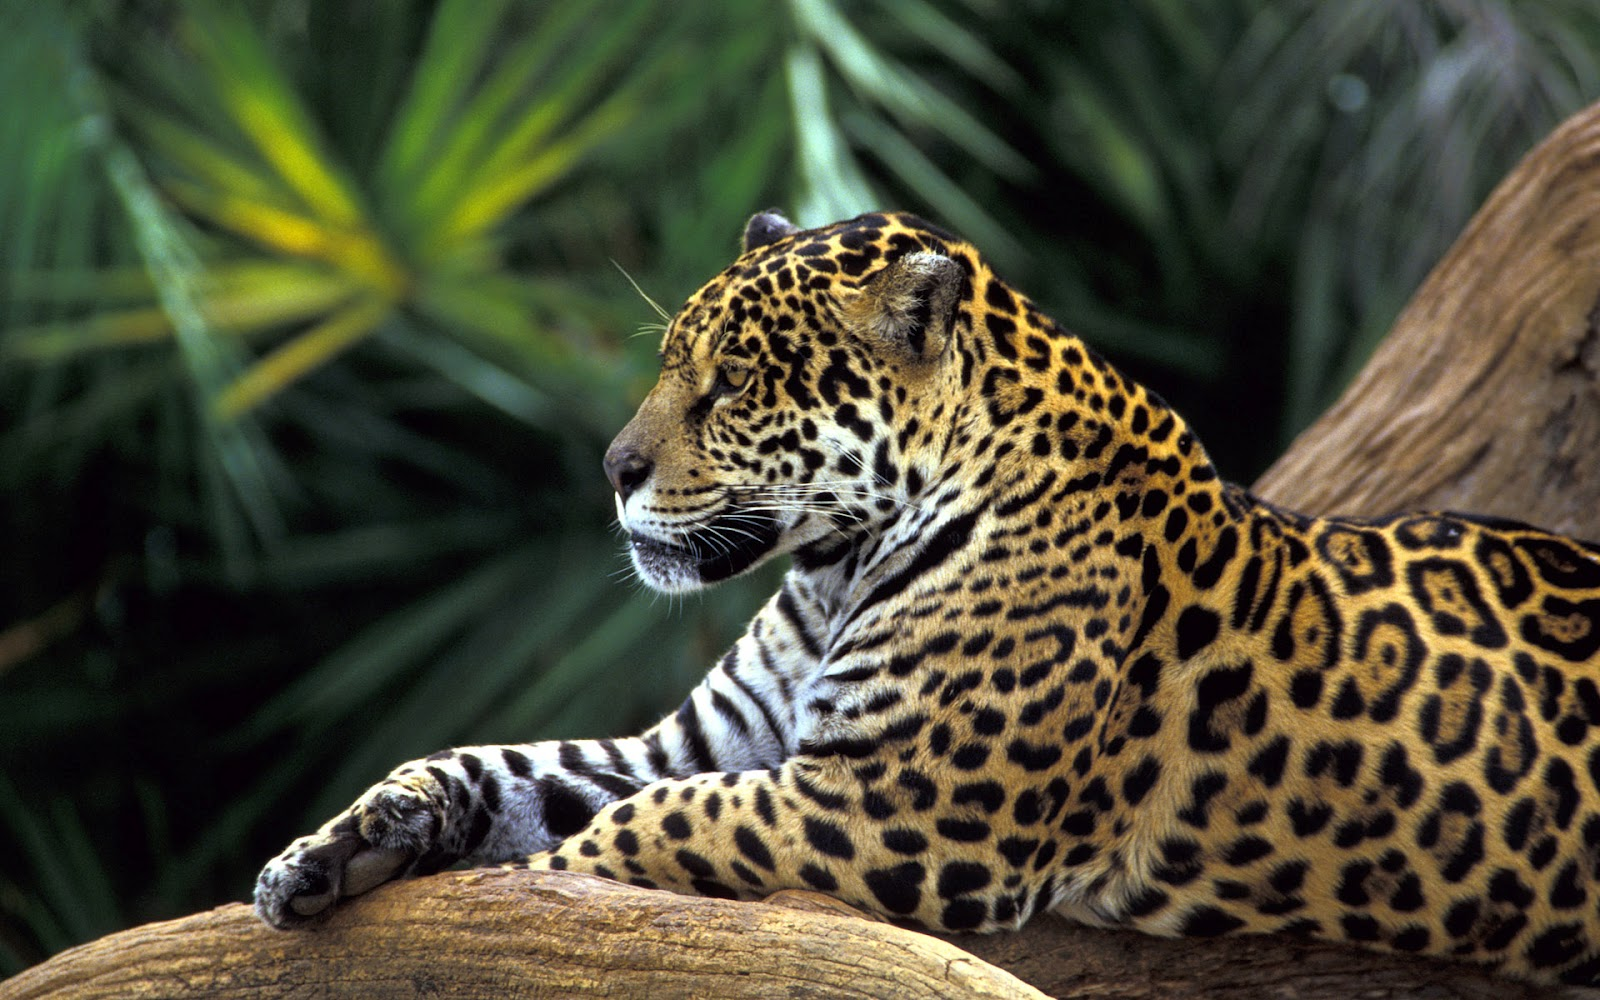 http://1.bp.blogspot.com/-7ZlcEmTqMaM/T-qNvI2-JdI/AAAAAAAAIsU/VQ1Zv6XyqU0/s1600/brazil-leopard-jungle-windows7-theme.jpg